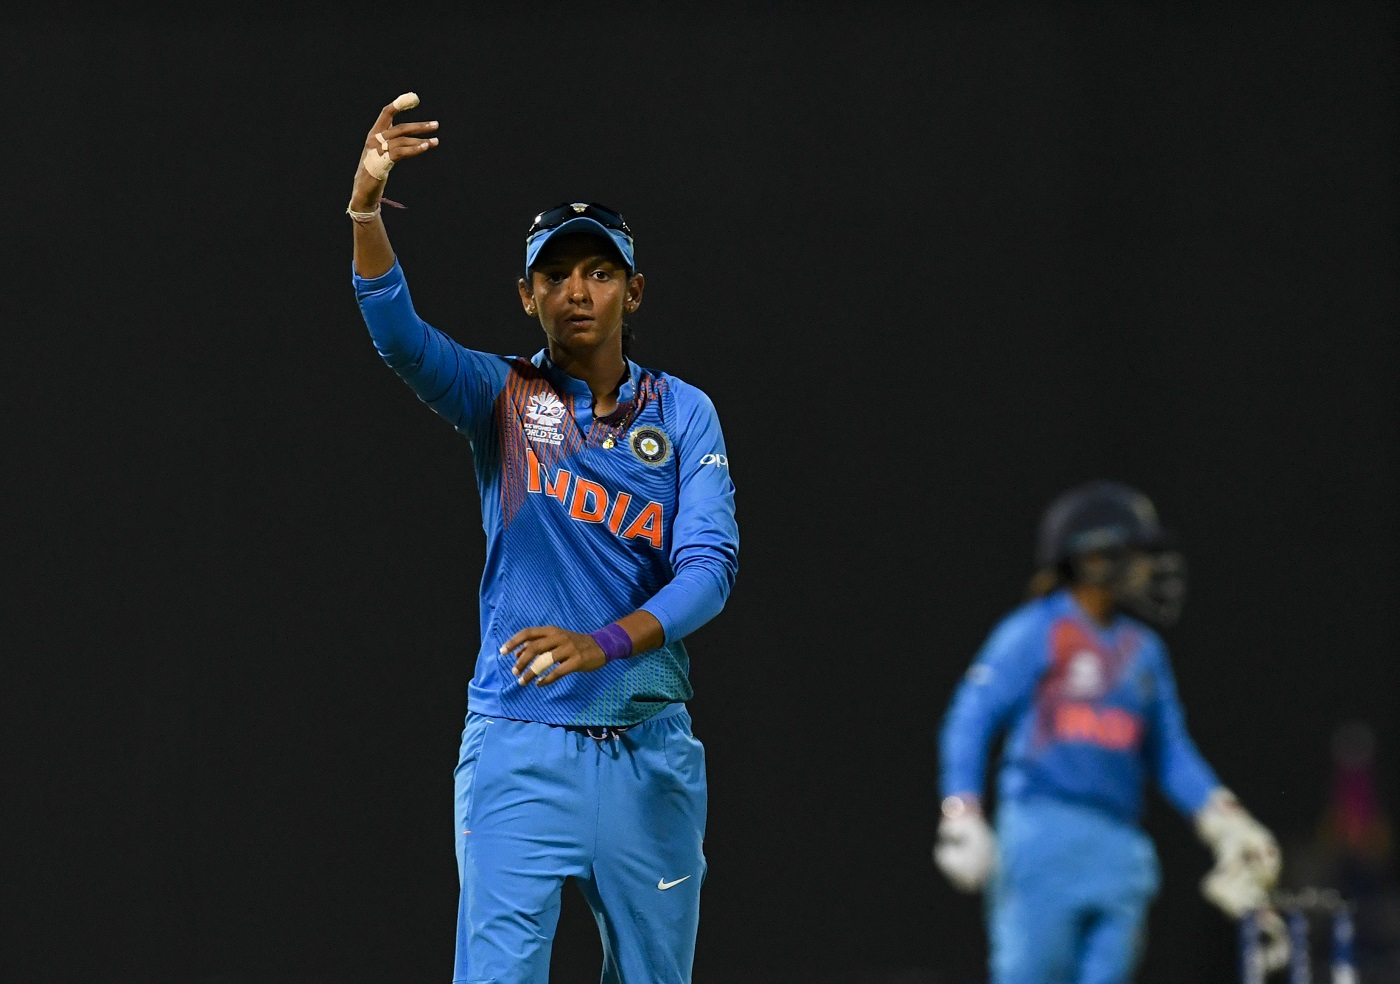 CoA To Meet Harmanpreet Kaur And Mithali Raj After Latter's Exclusion From Playing XI In WT20 Semifinal